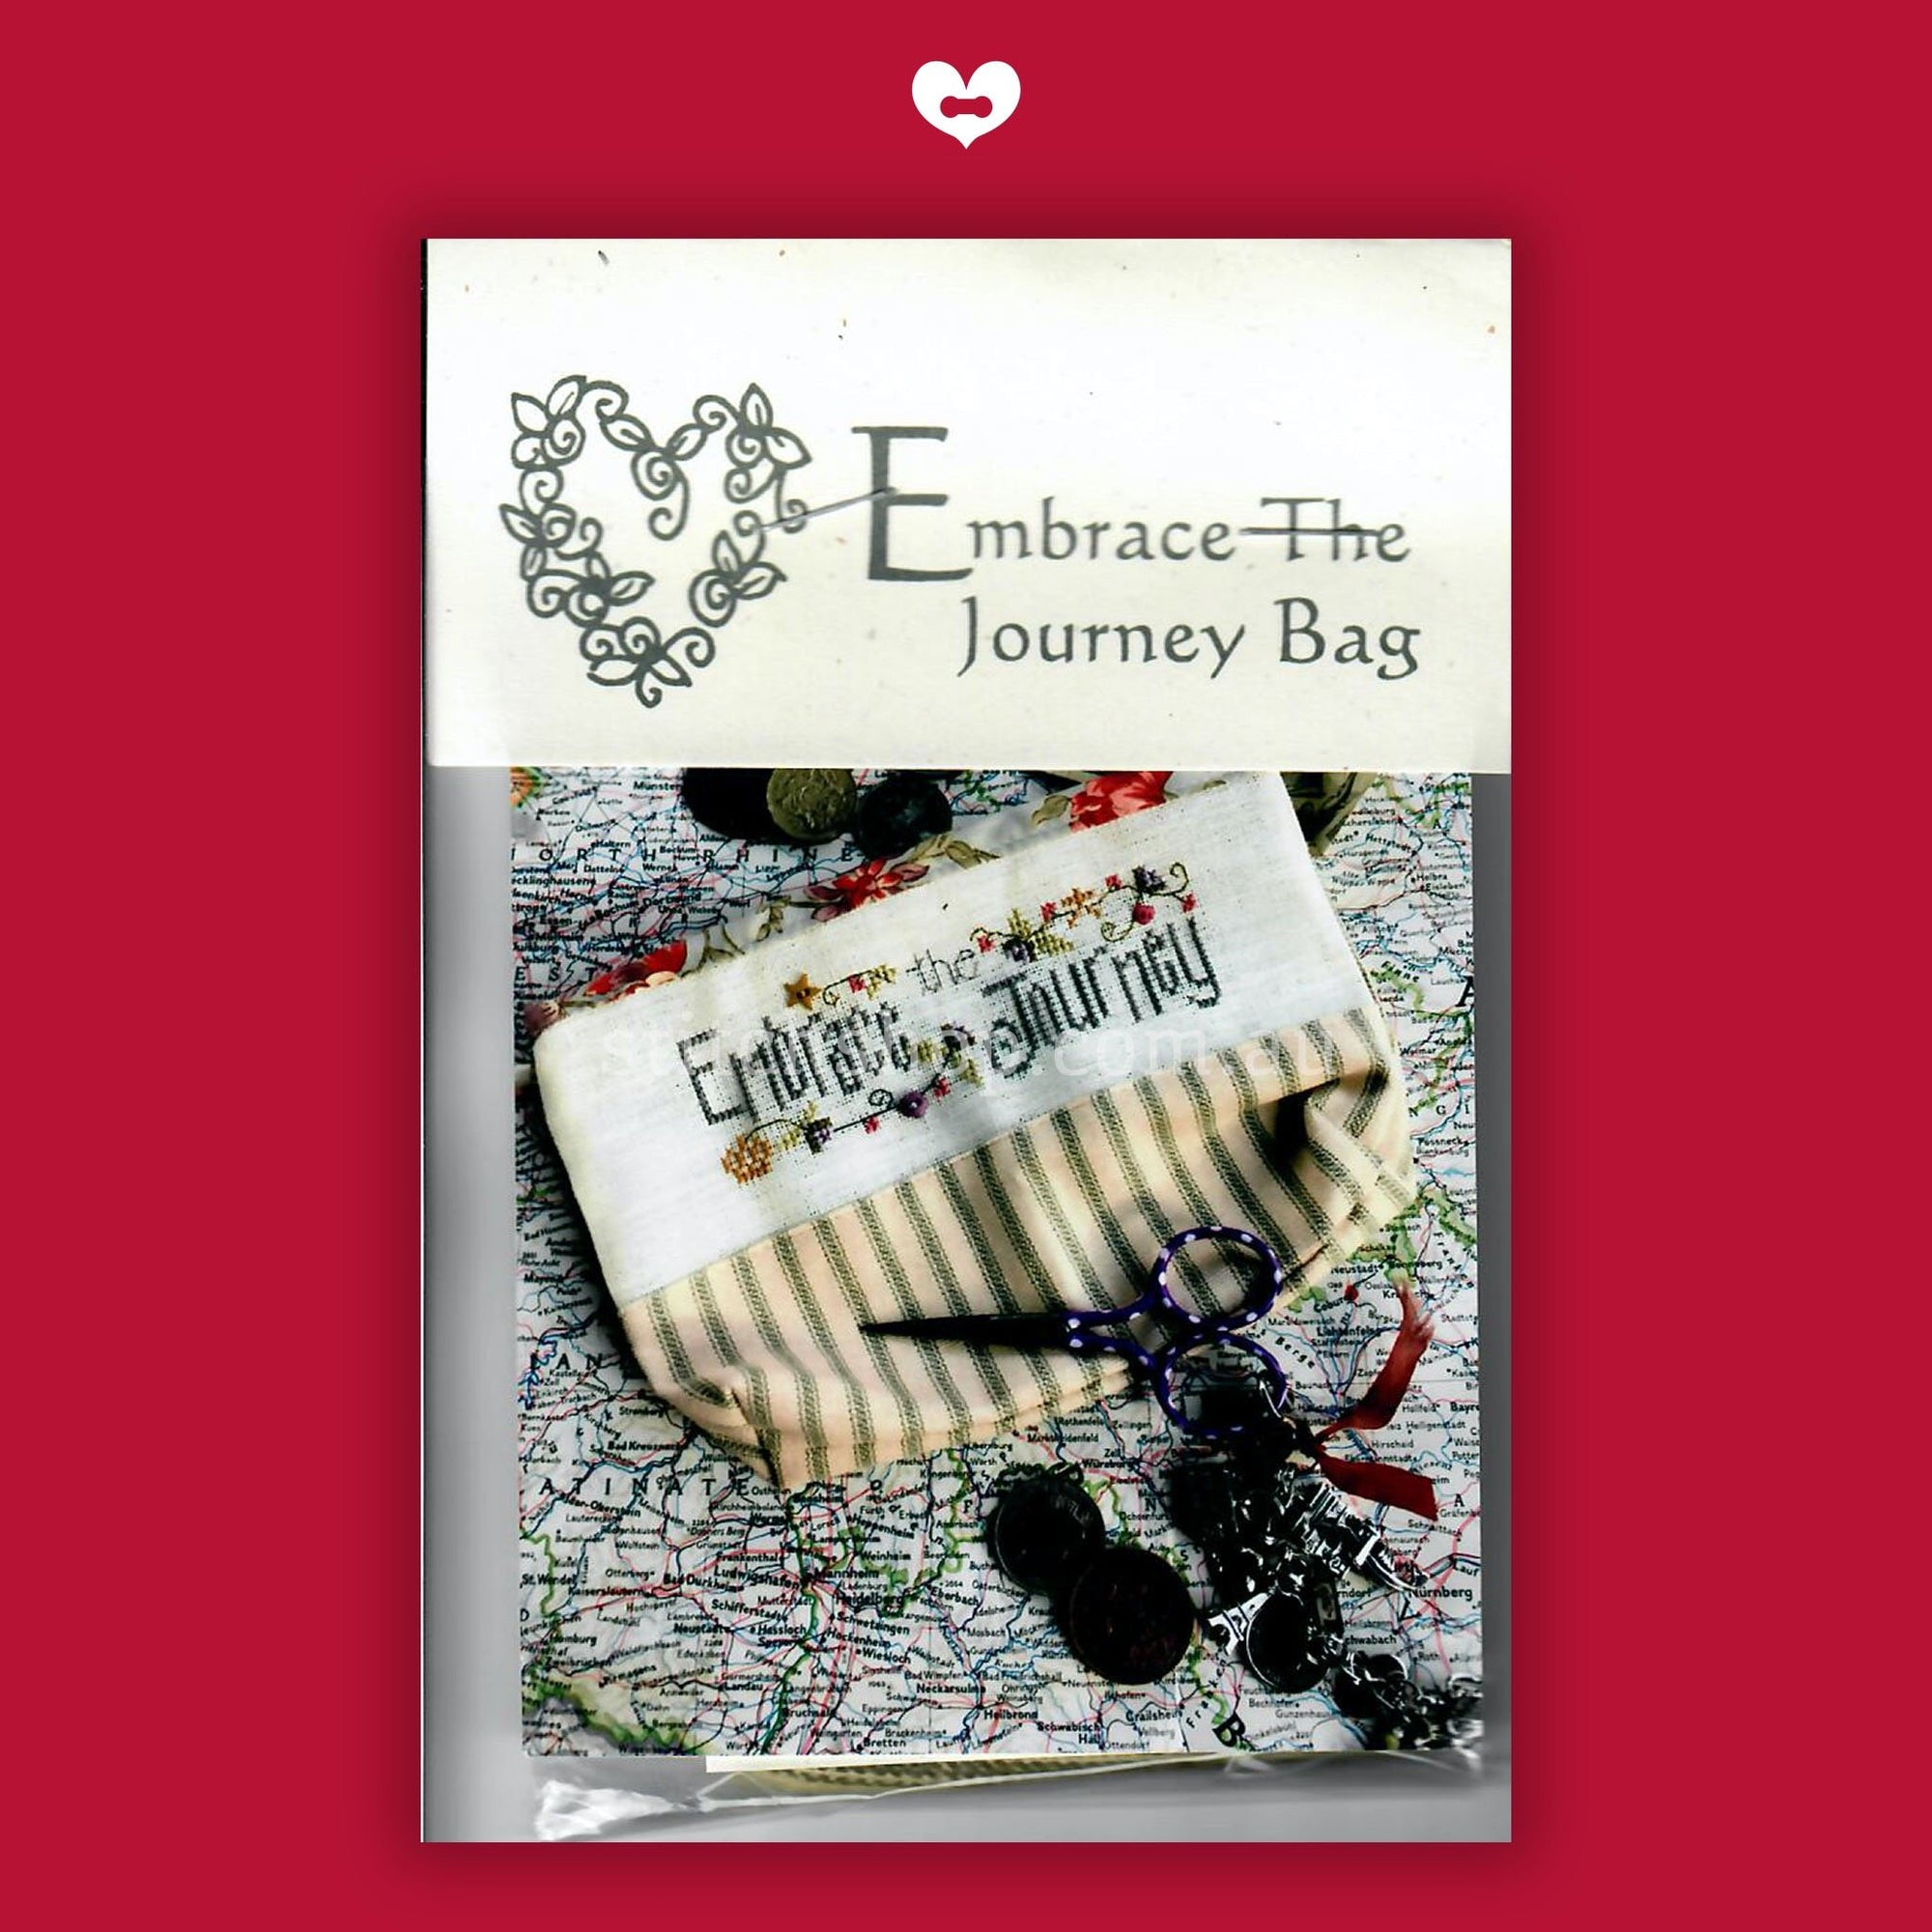 Embrace the Journey Bag